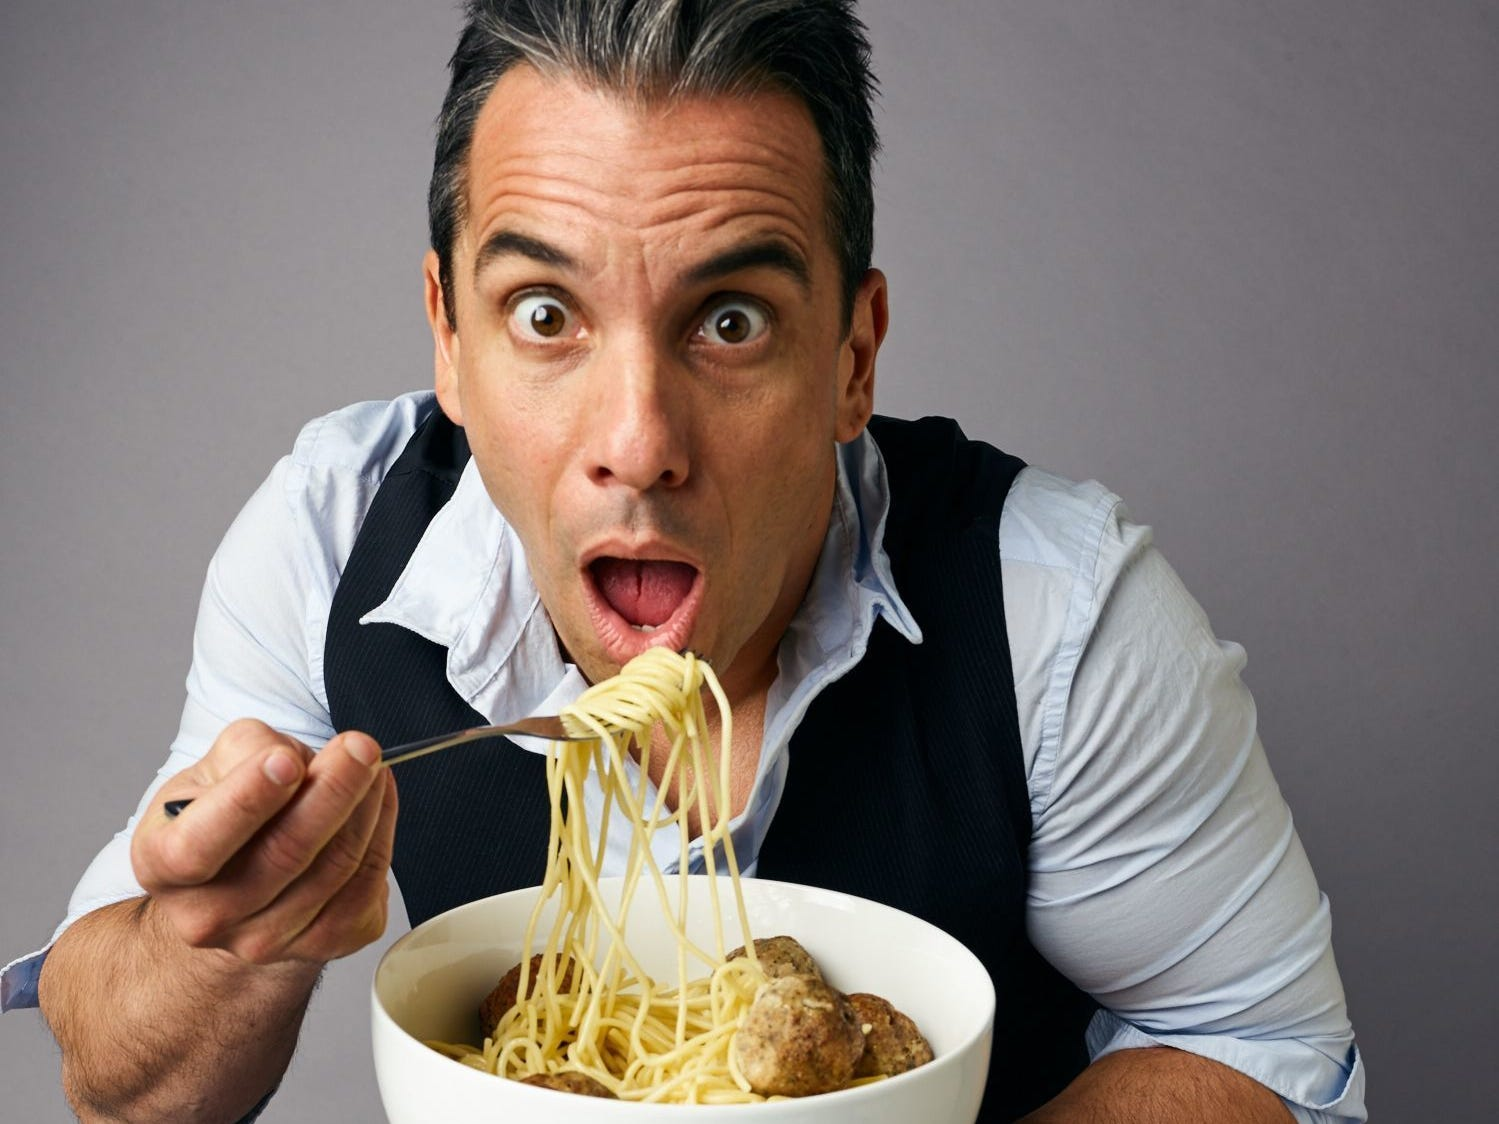 April 13 SEBASTIAN MANISCALCO: 7 and 9:30 p.m. Tennessee Performing Arts Center, from $47, tpac.org